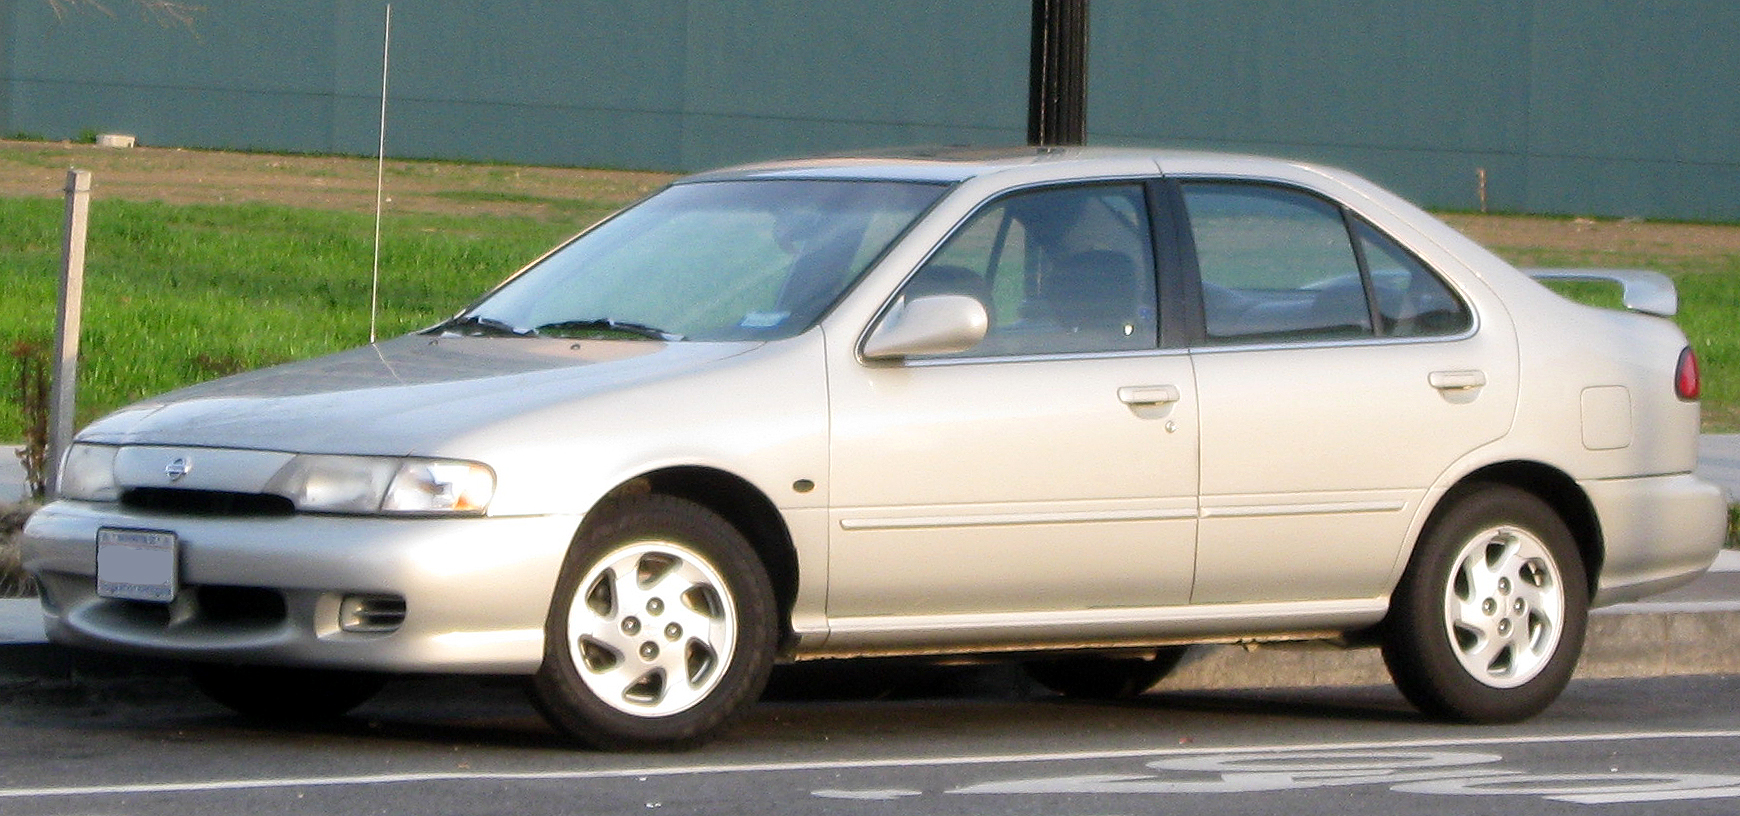 File:1999 Nissan Sentra -- 04-10-2011.jpg - Wikimedia Commons